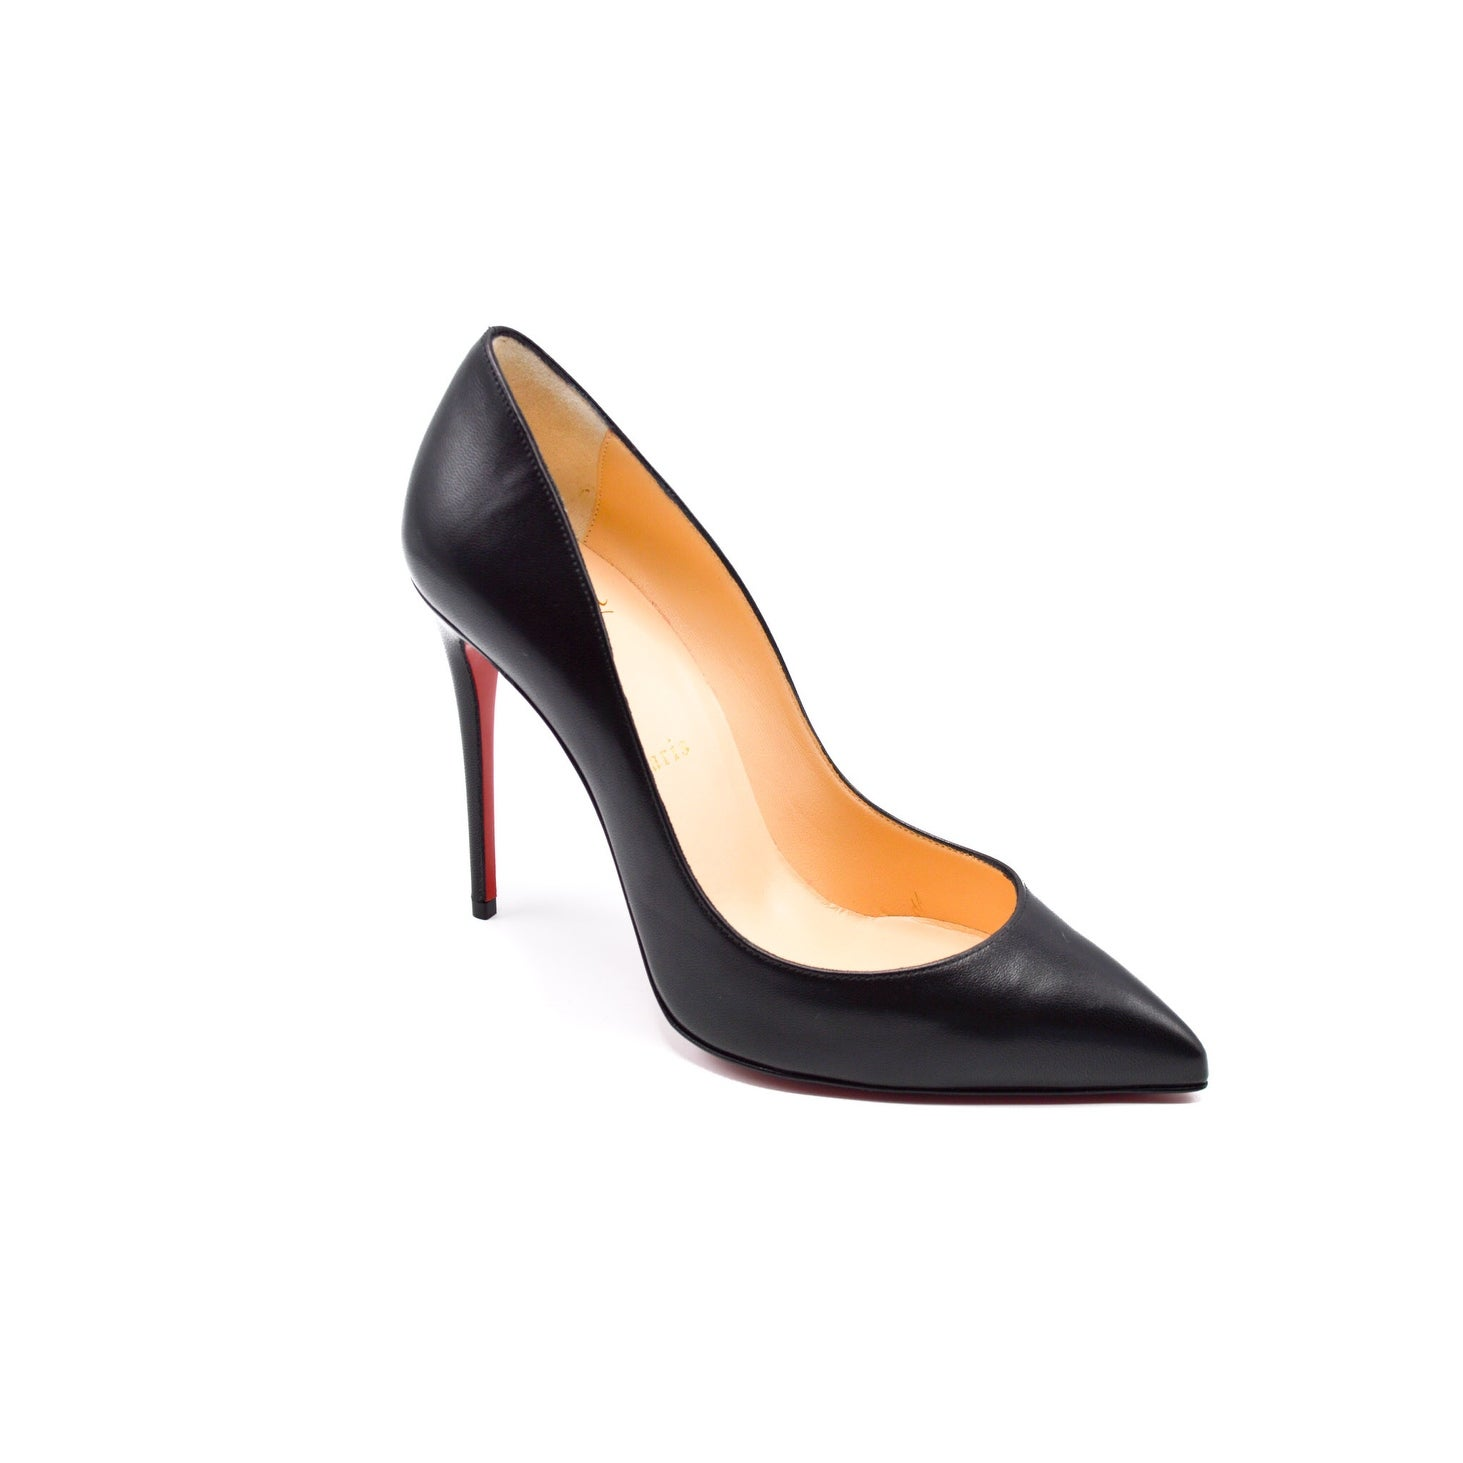 factory authentic 9acbe 9f822 Christian Louboutin Pigalle Follies Nappa Black Pumps Size 38 / 8